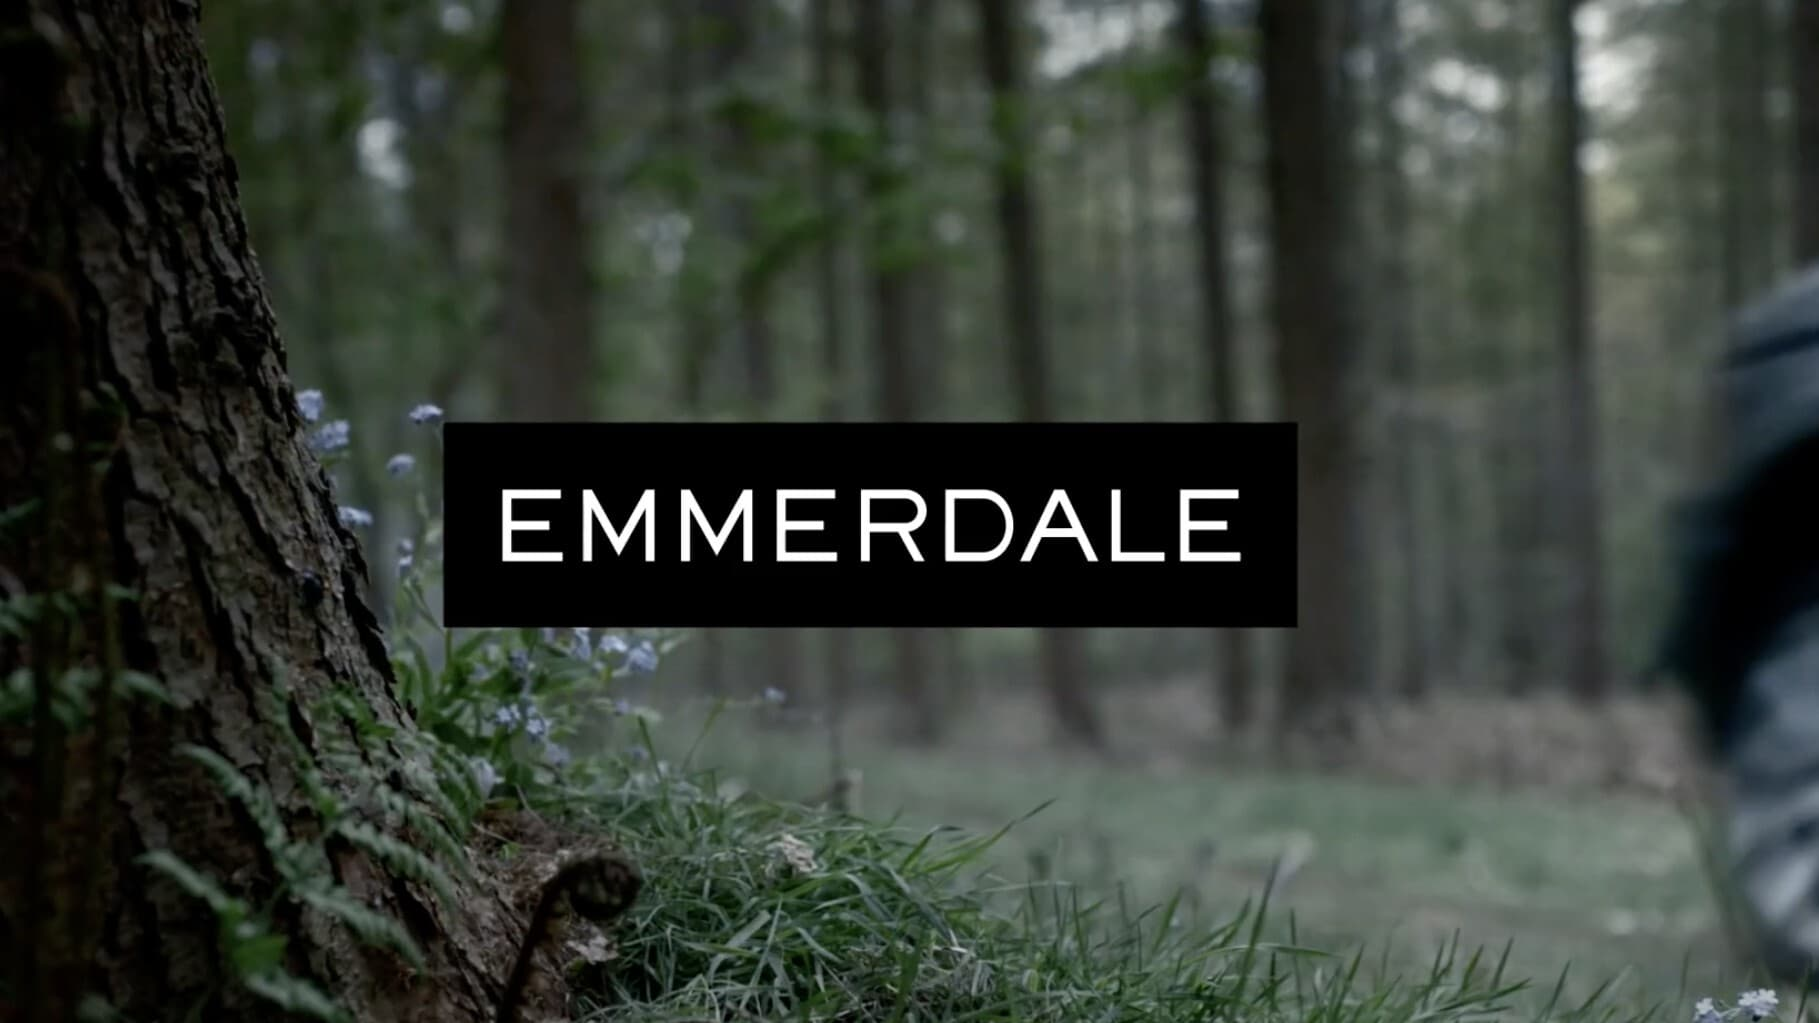 Emmerdale - Season 36 Episode 241 : October 22, 2007